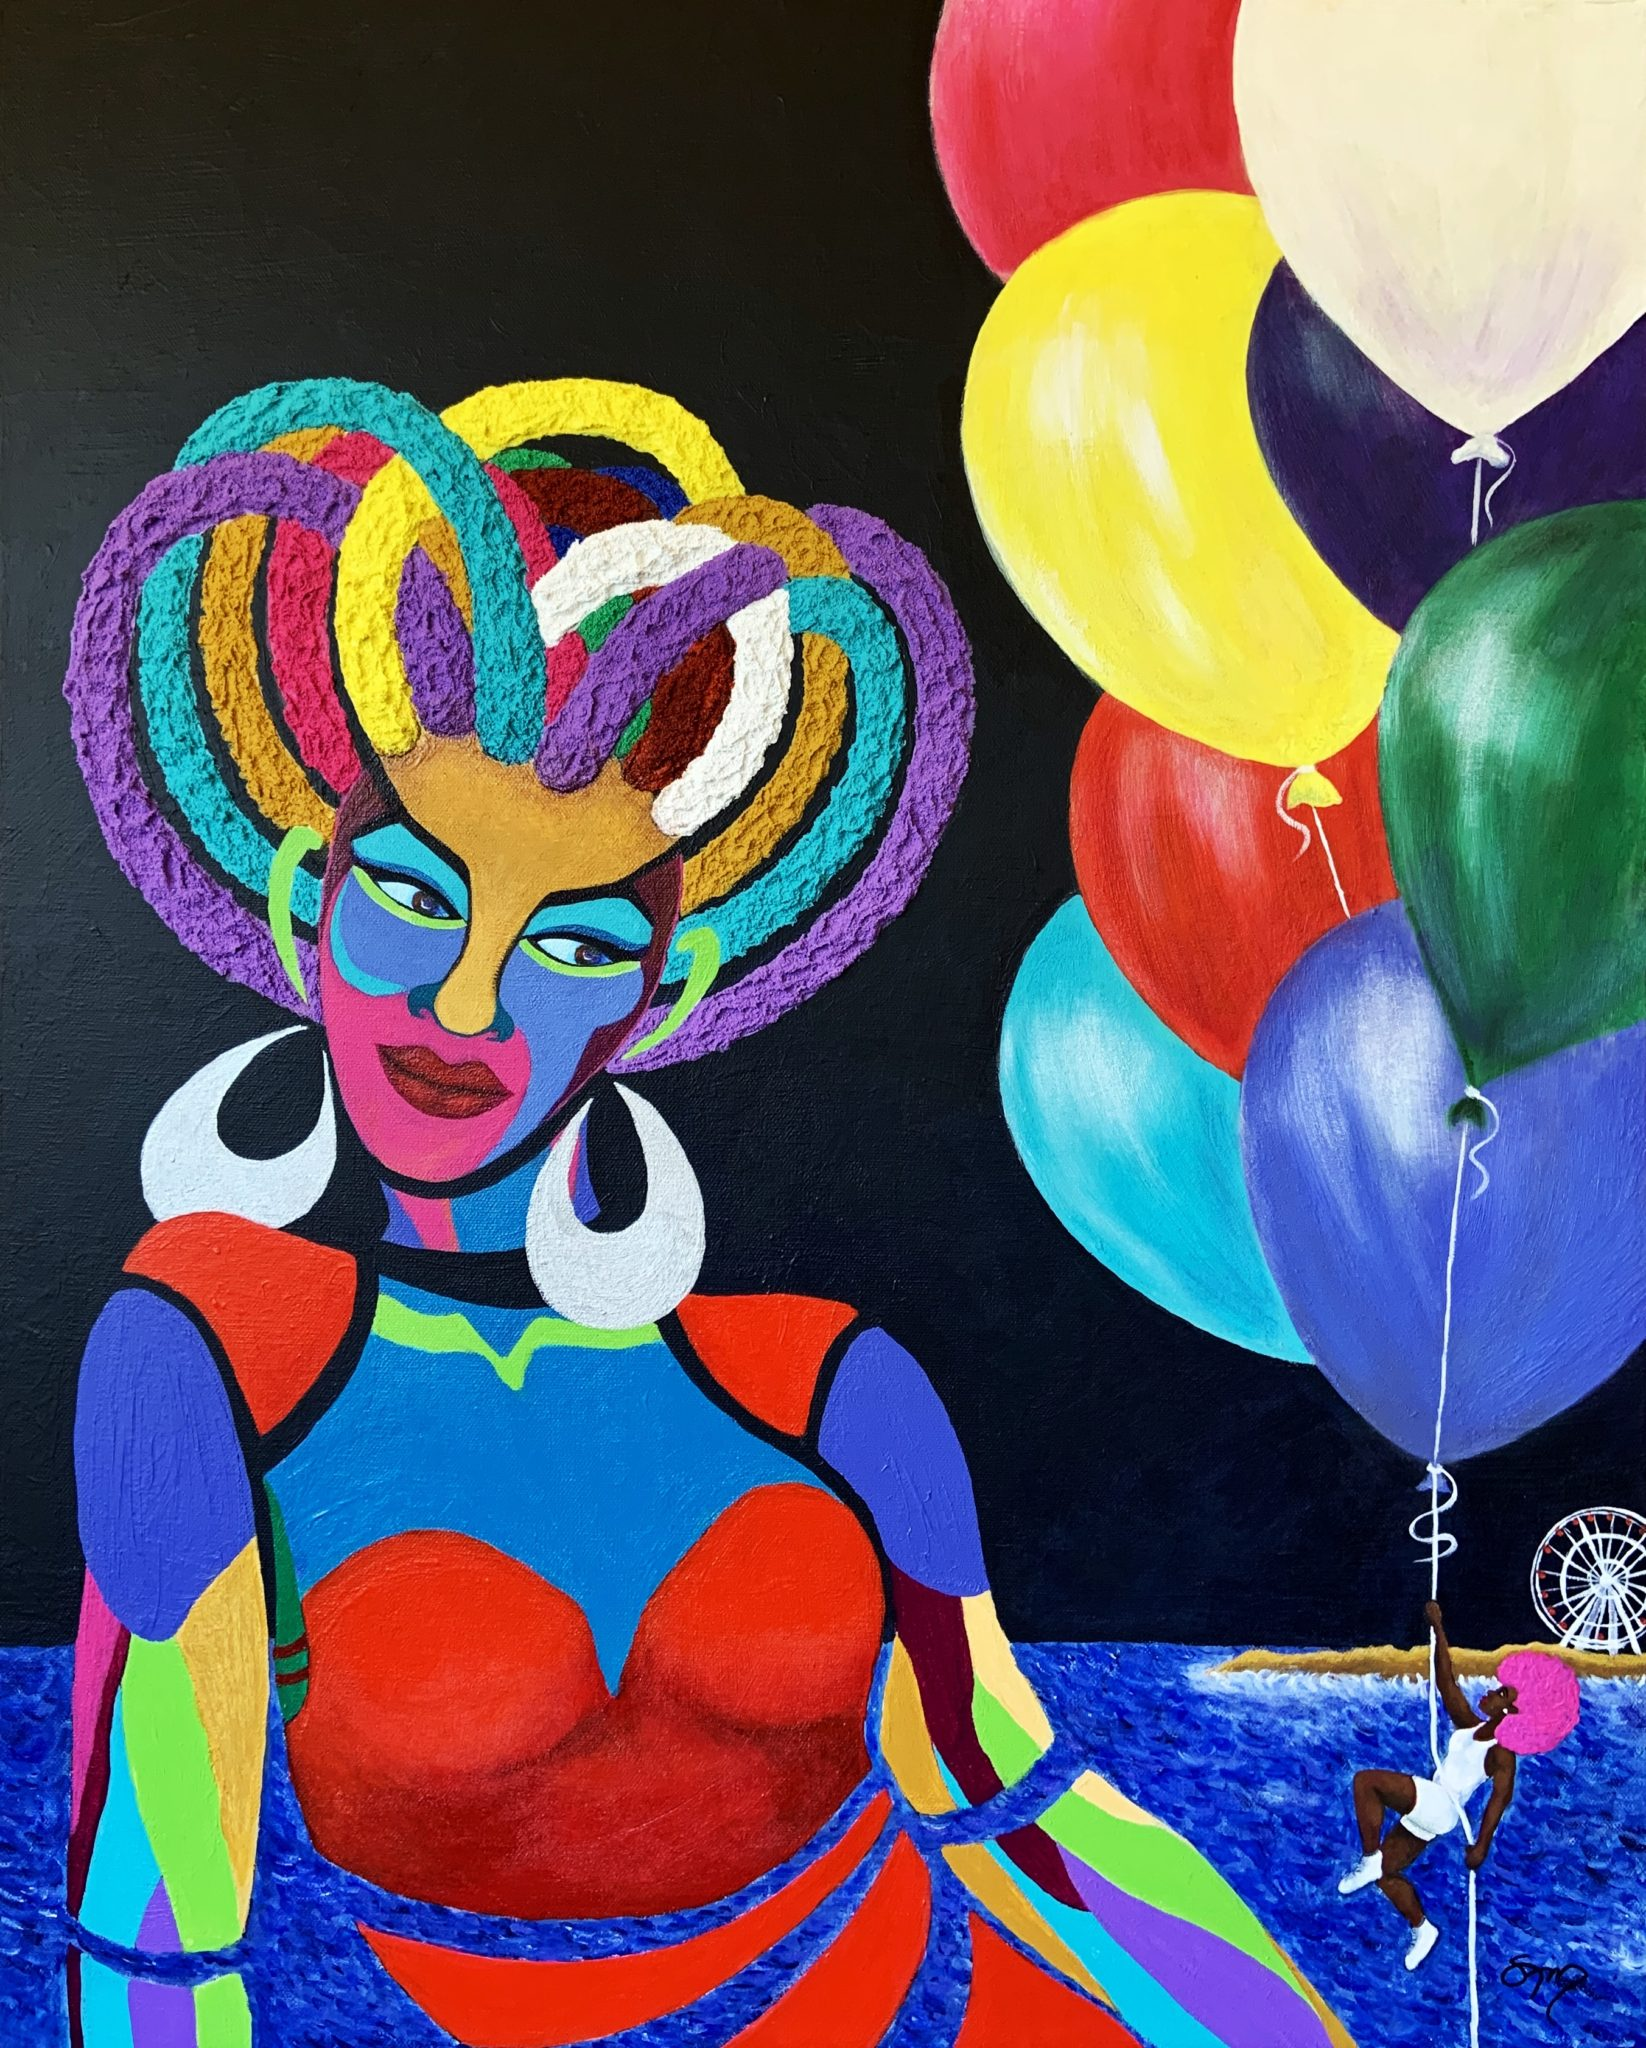 Paper Doll and Live Girl with Balloons, acrylic on 24x30 gallery wrapped canvas